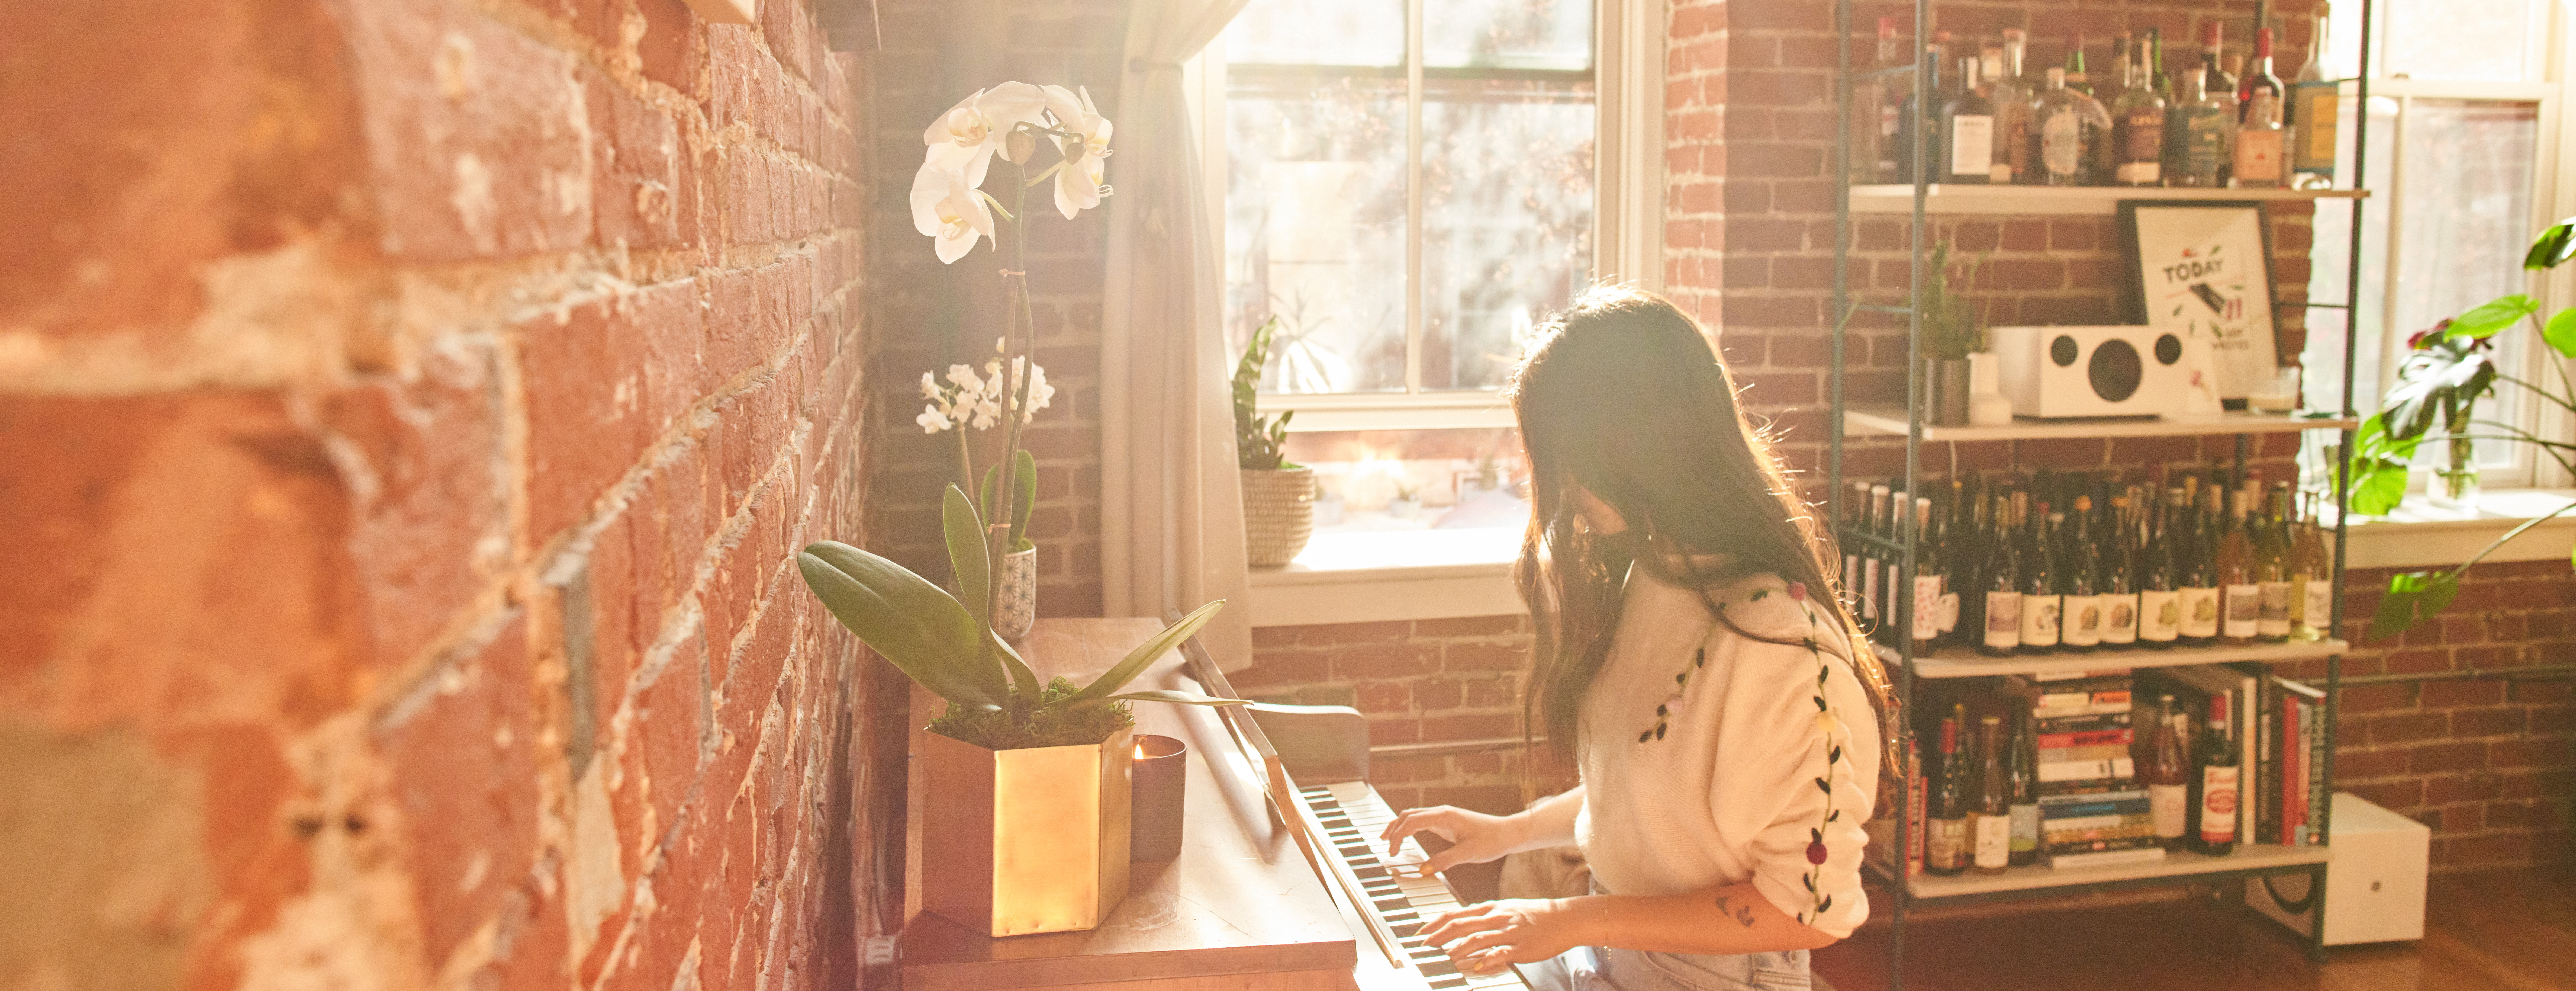 Woman playing piano in the sunlight with two white orchid flowers